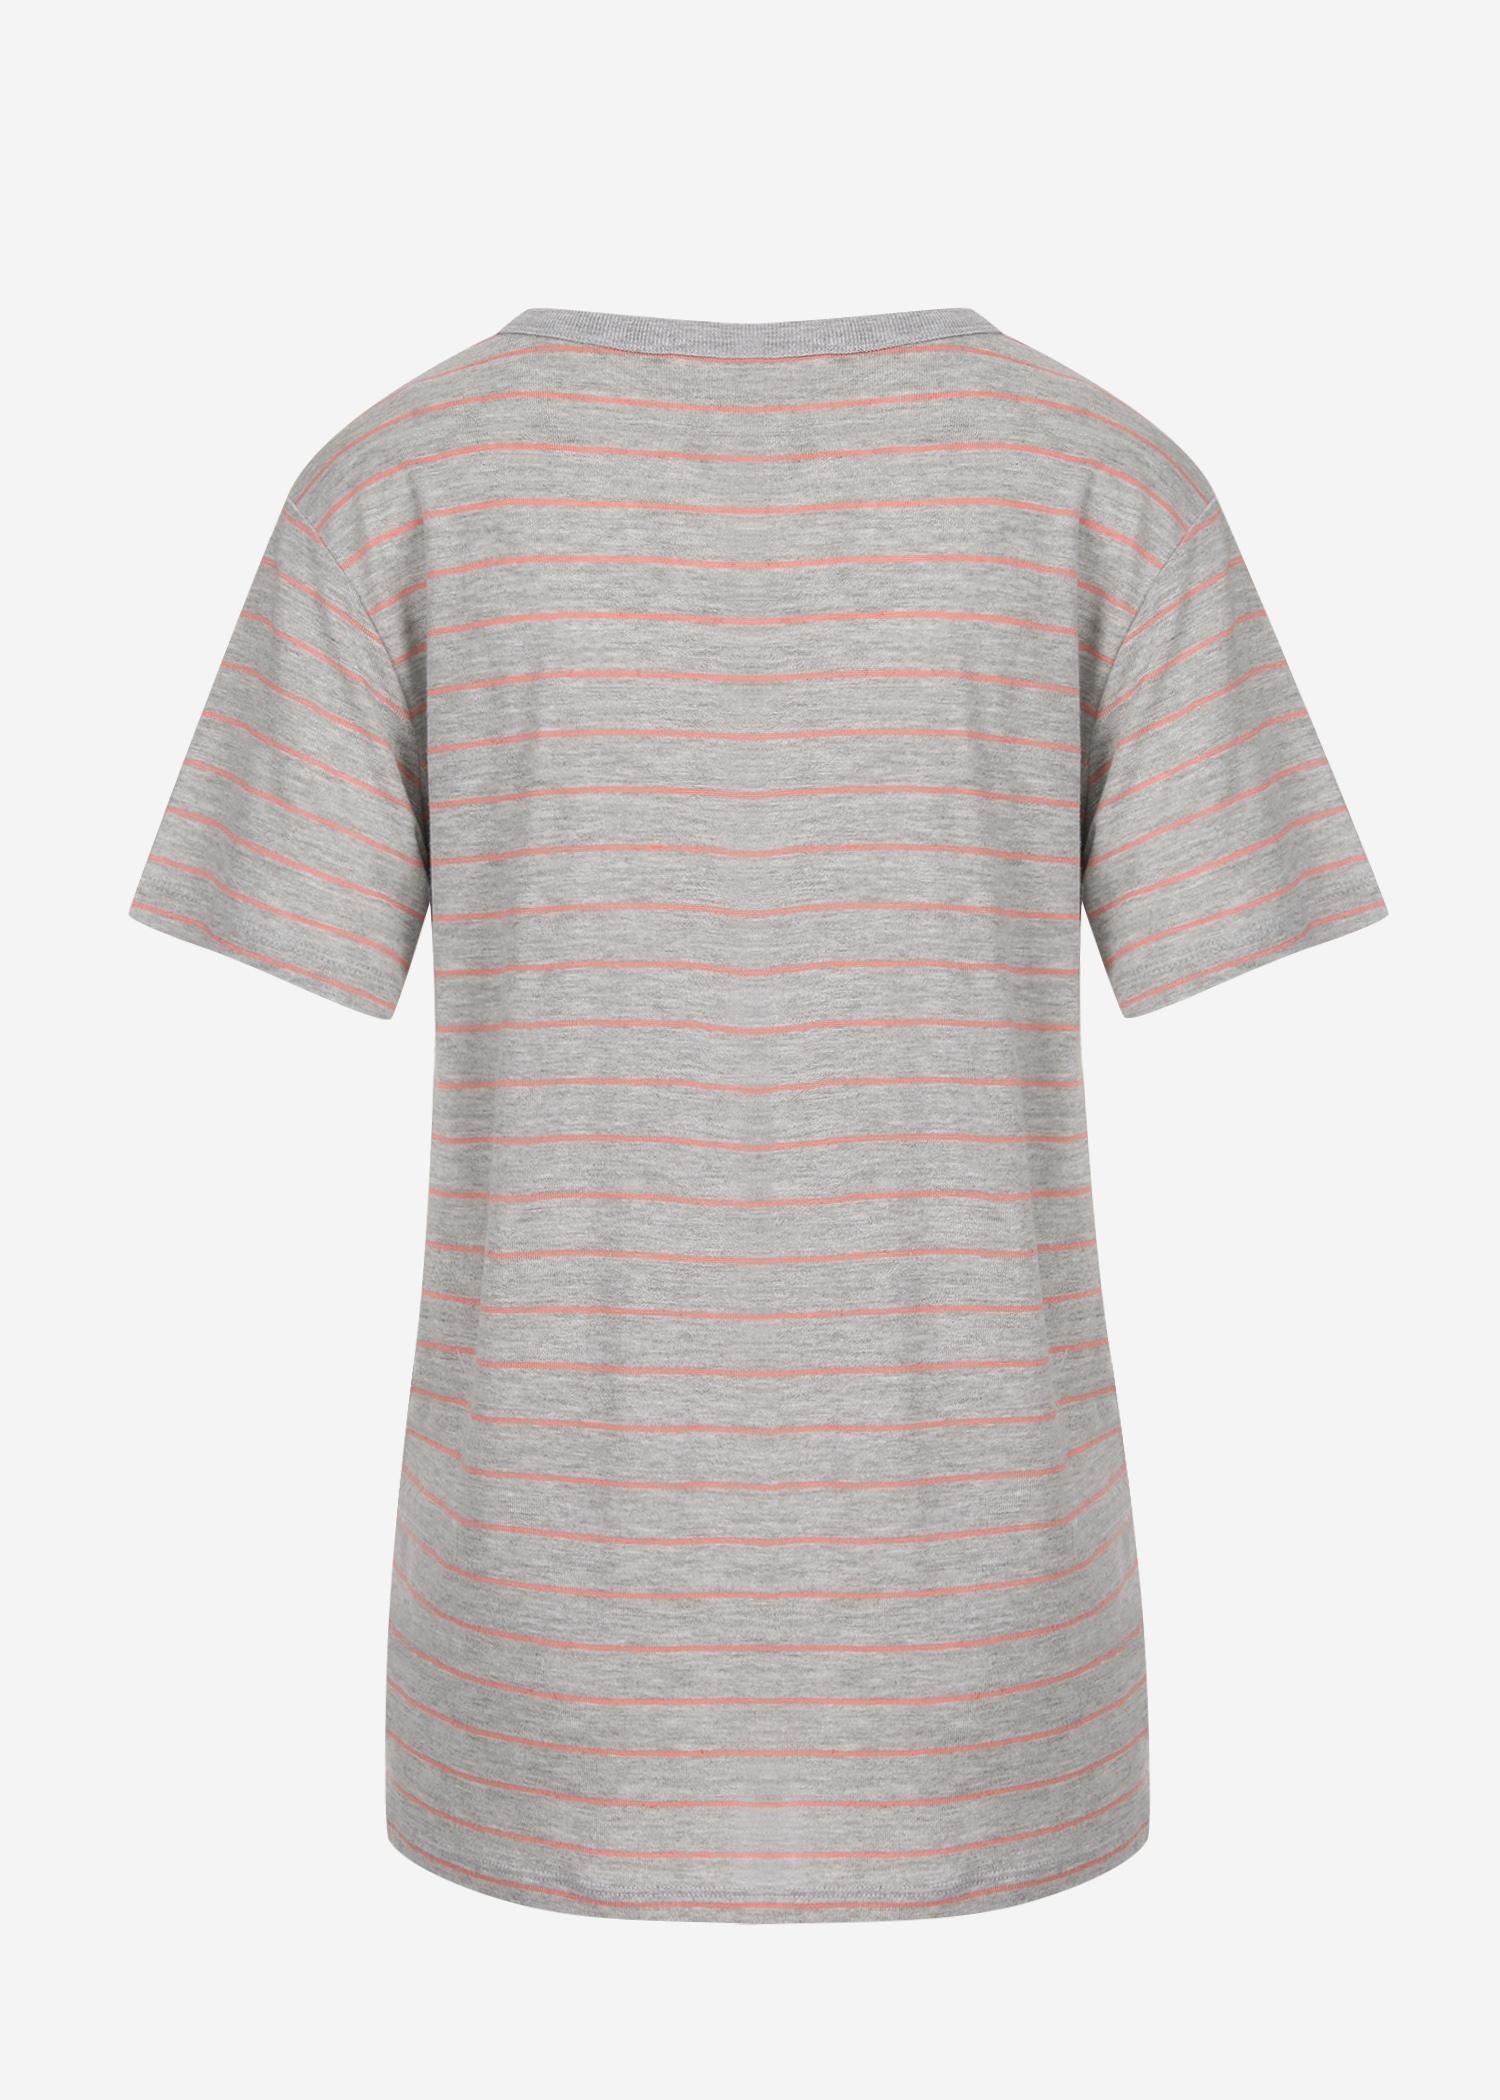 74ced7254674 T By Alexander Wang Thin Striped Slub Jersey S s Pocket Tee in Gray ...